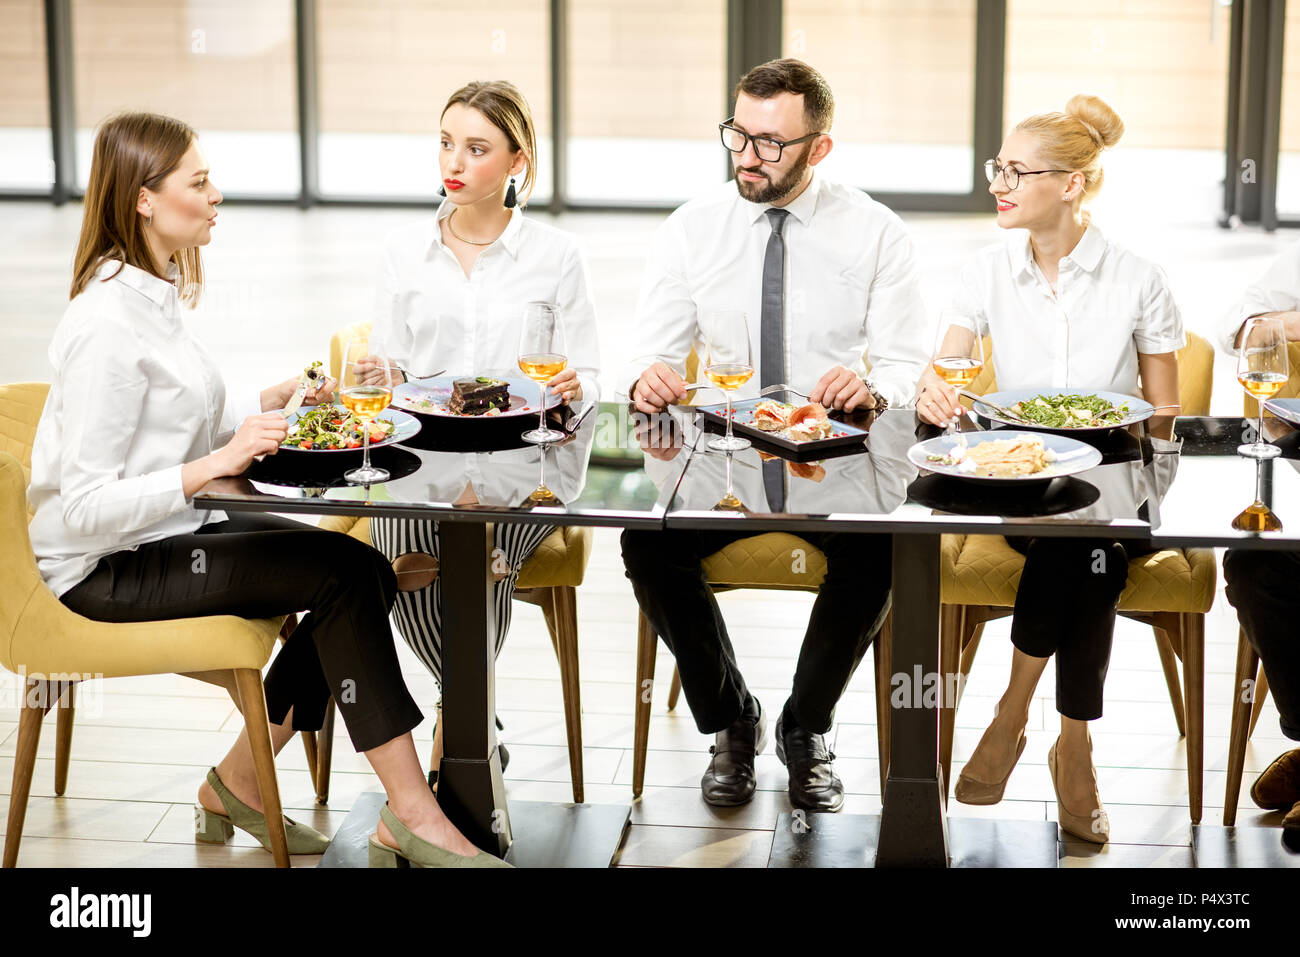 Business people during a lunch at the restaurant - Stock Image